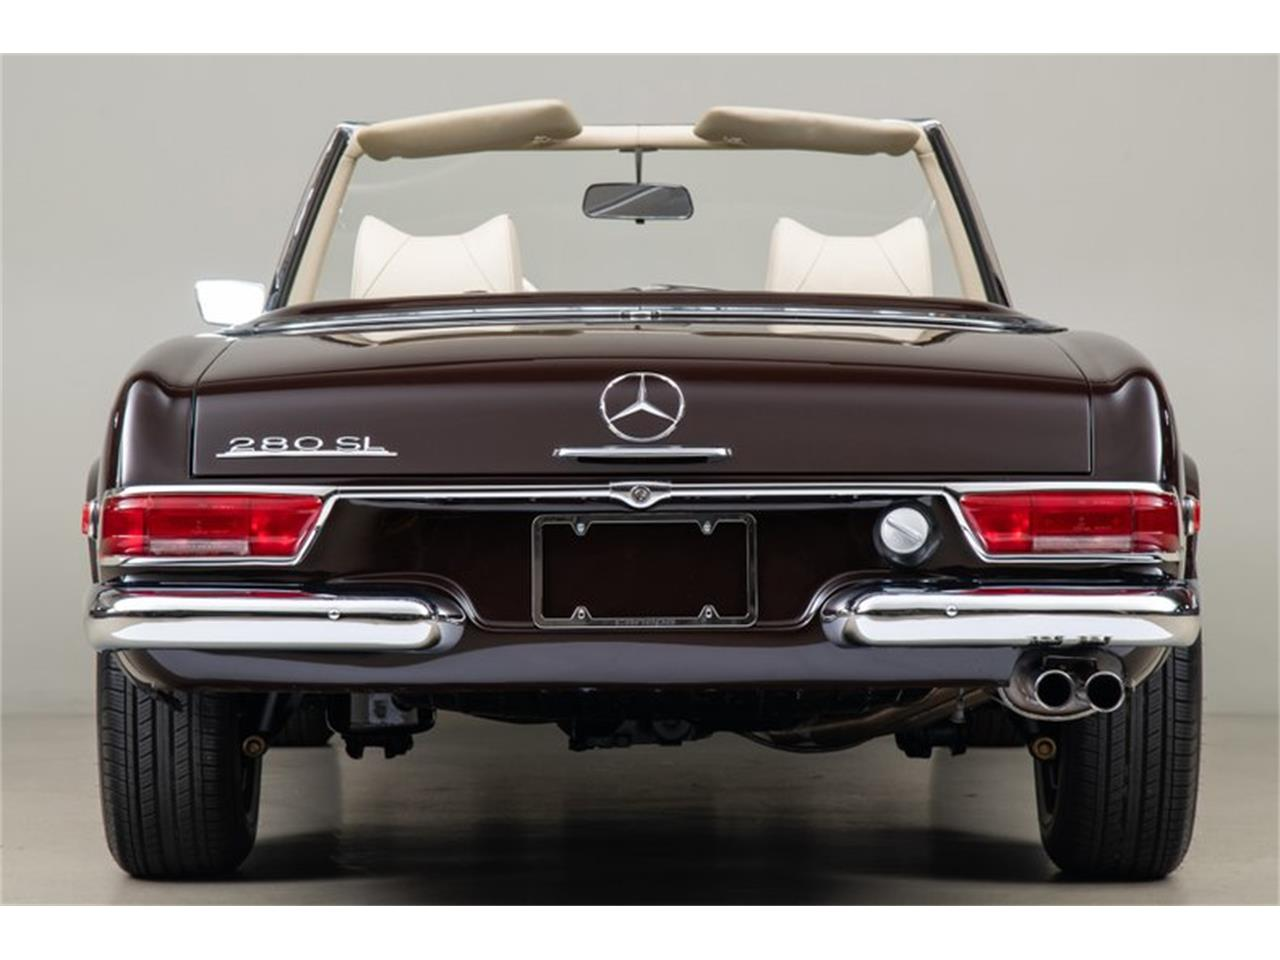 Large Picture of '69 Mercedes-Benz 280SL located in California Auction Vehicle - QALE